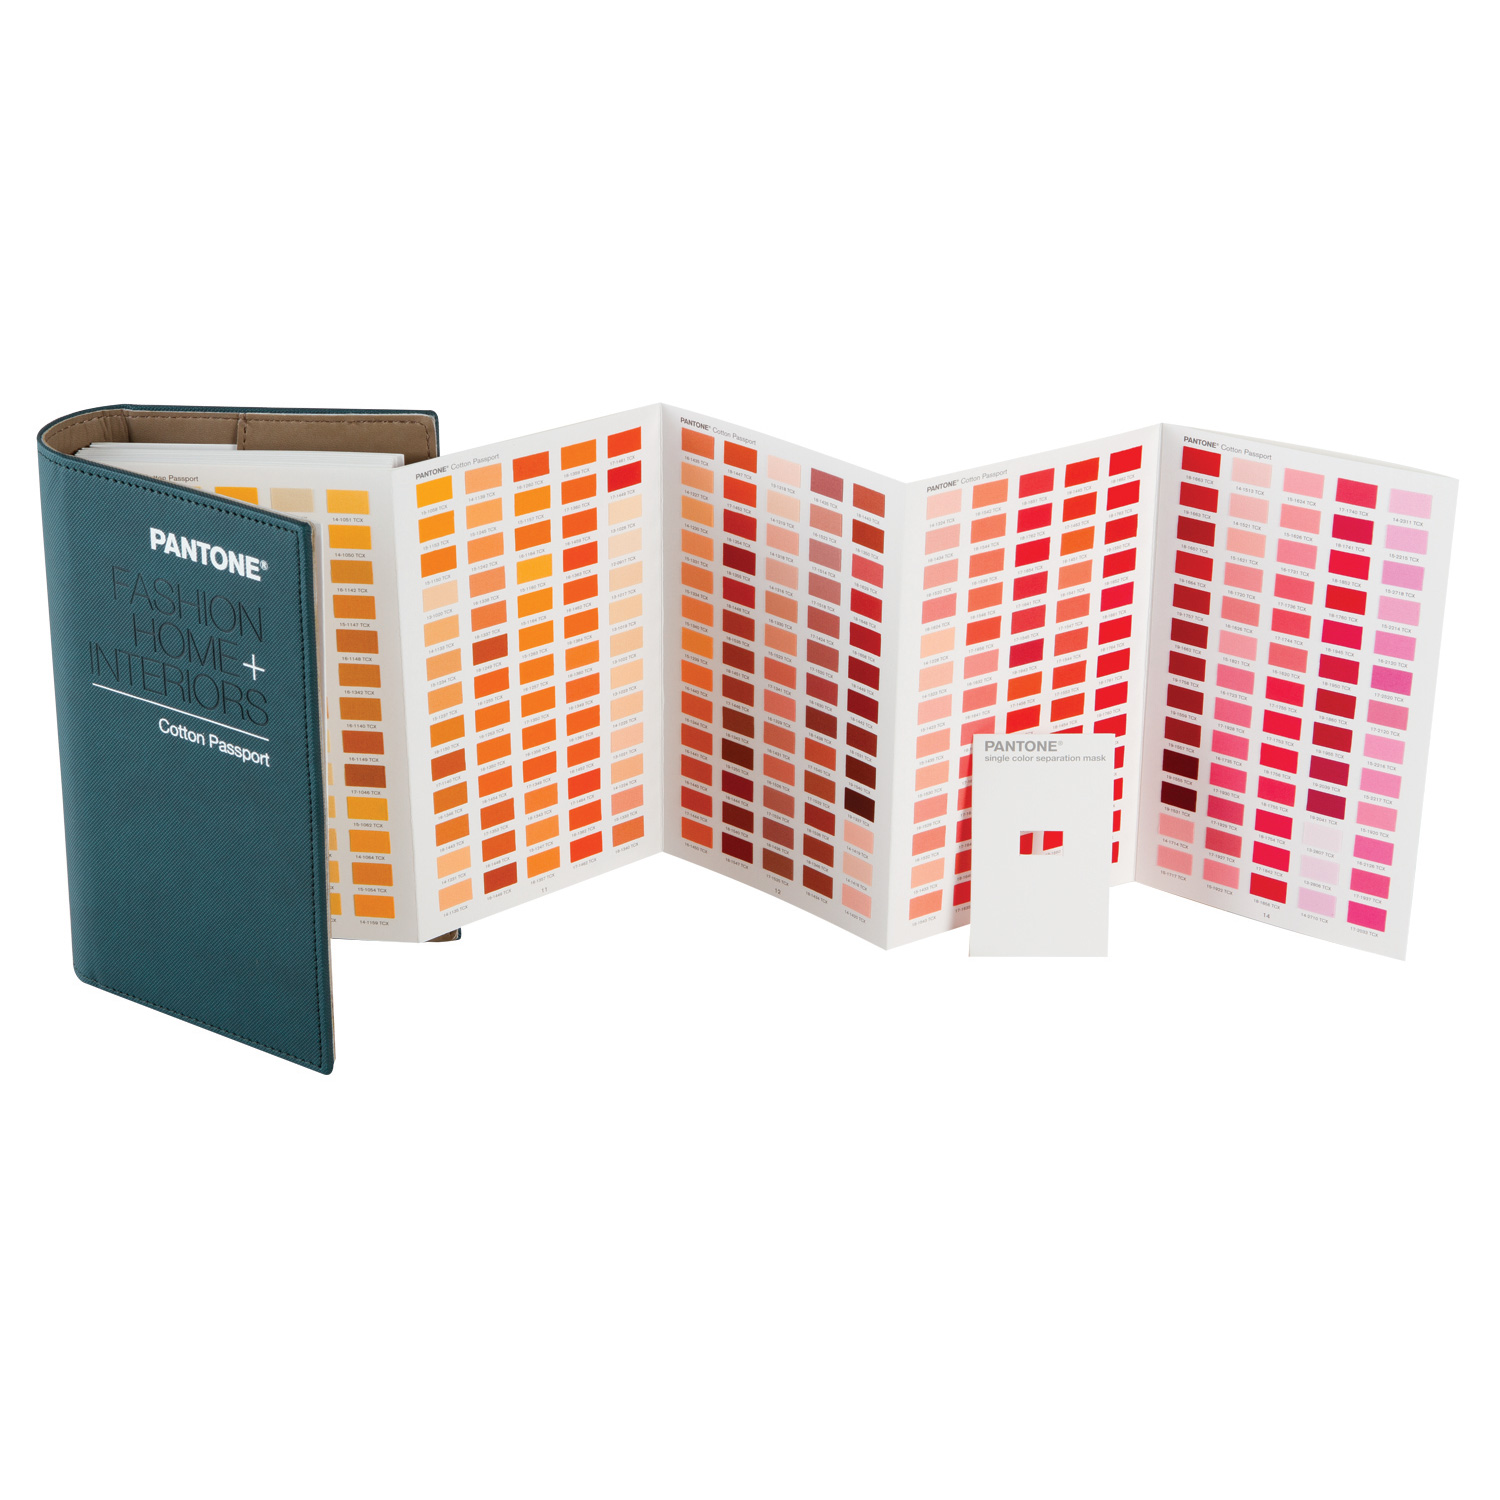 Pantone Specifier and Guide